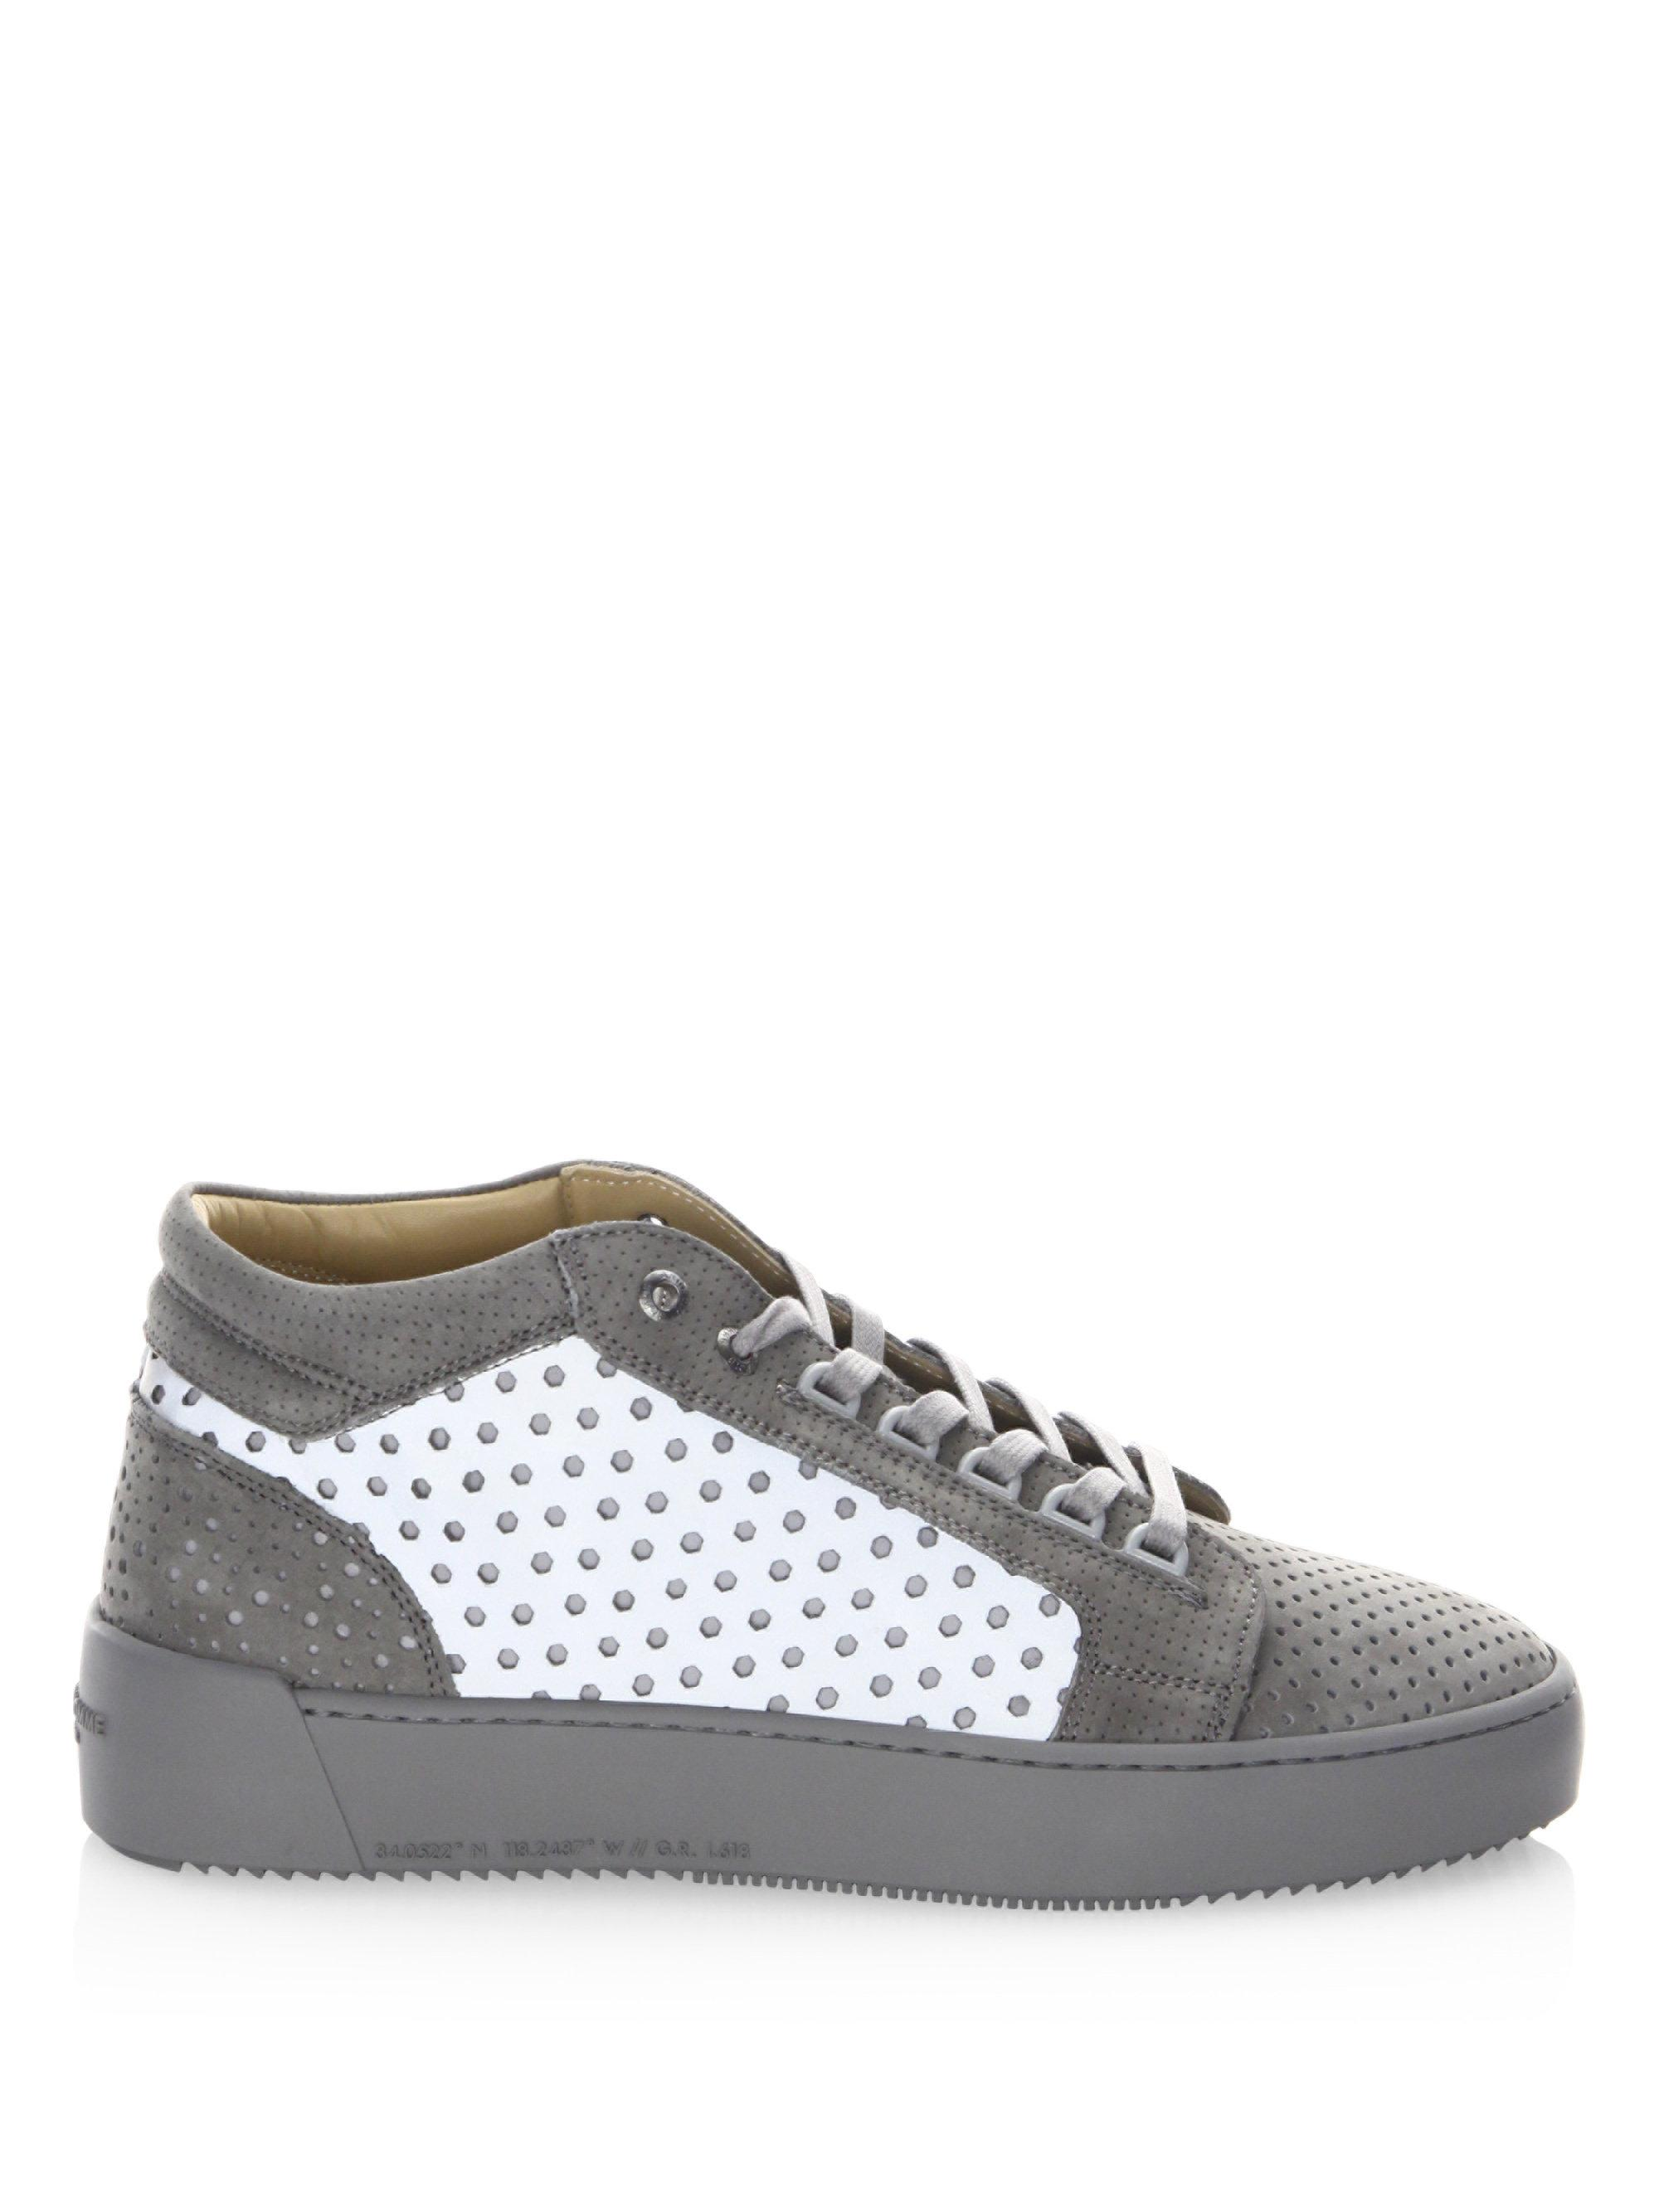 Android 3M Propulsion Low-Top Sneakers CyvqYoxUbC